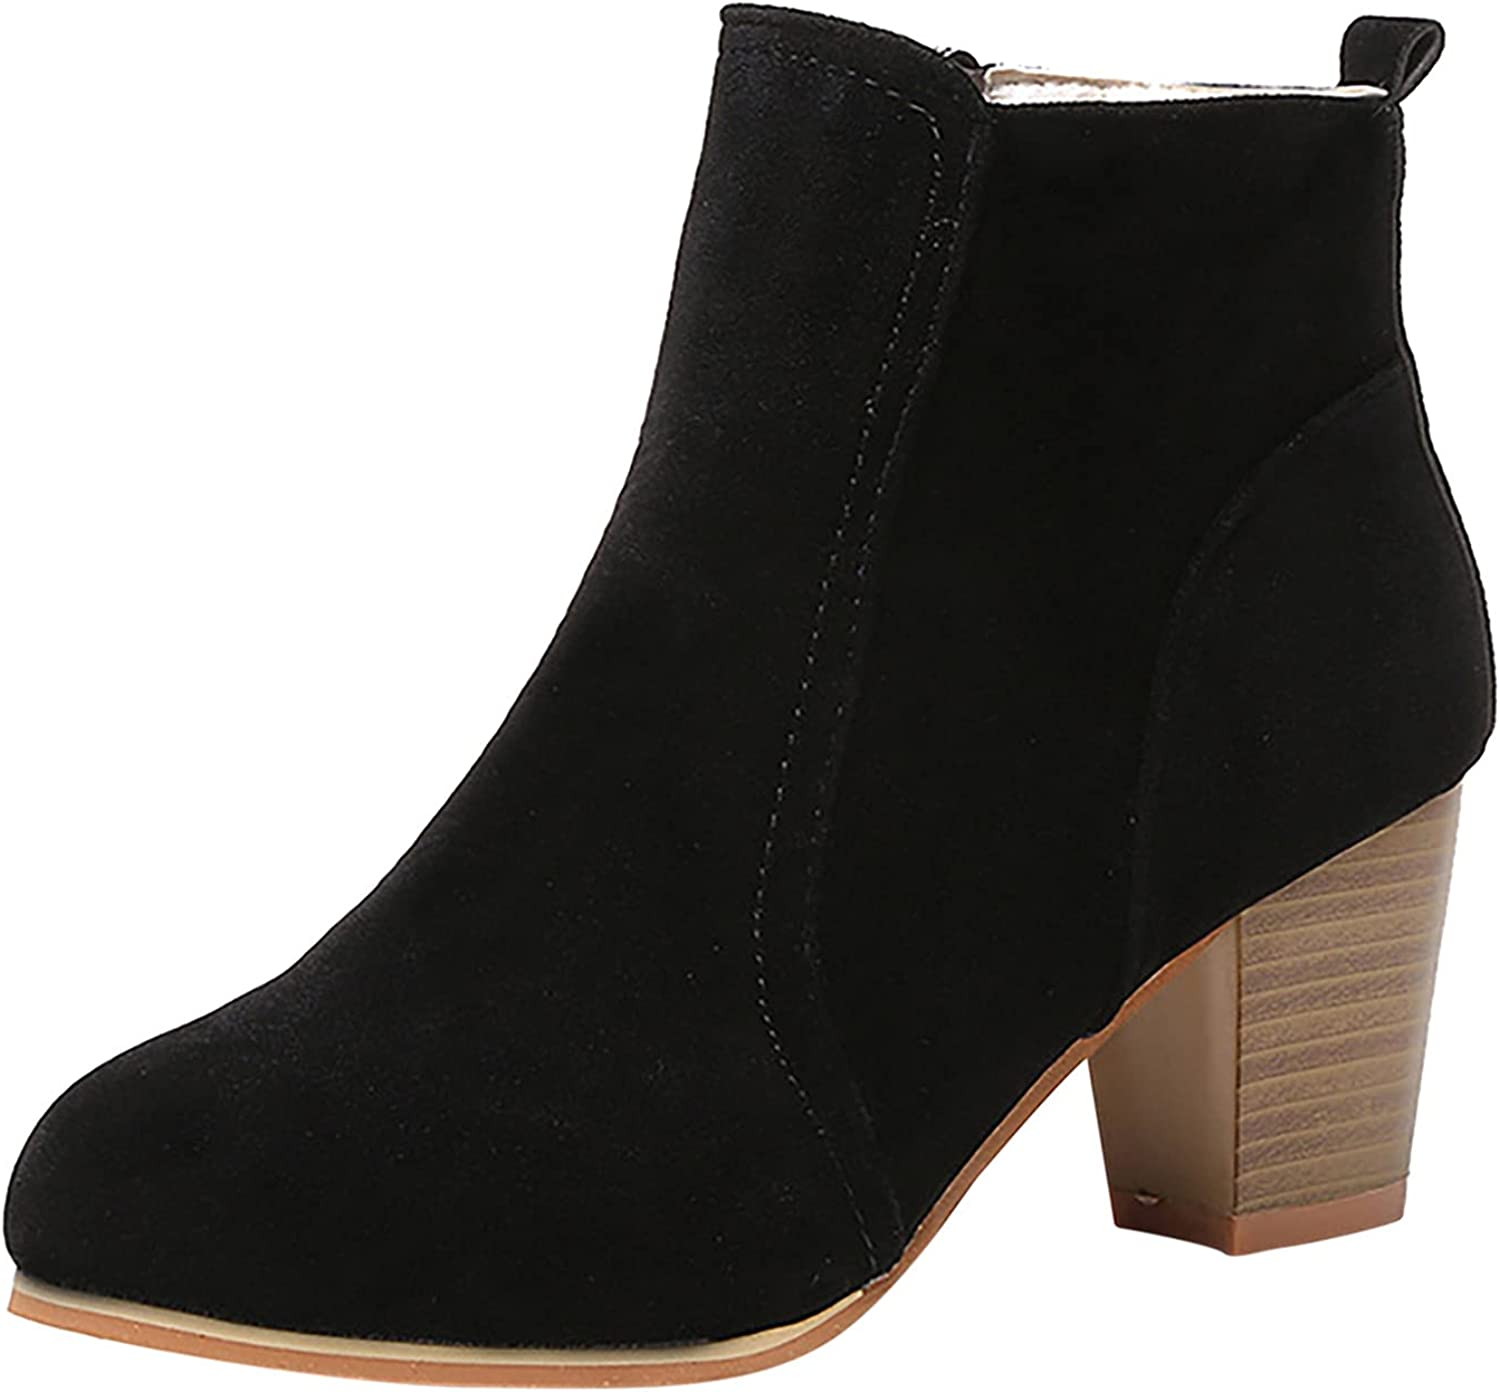 Boots For Women Ankle Ranking TOP15 for cheap Western Booties Sunflowers